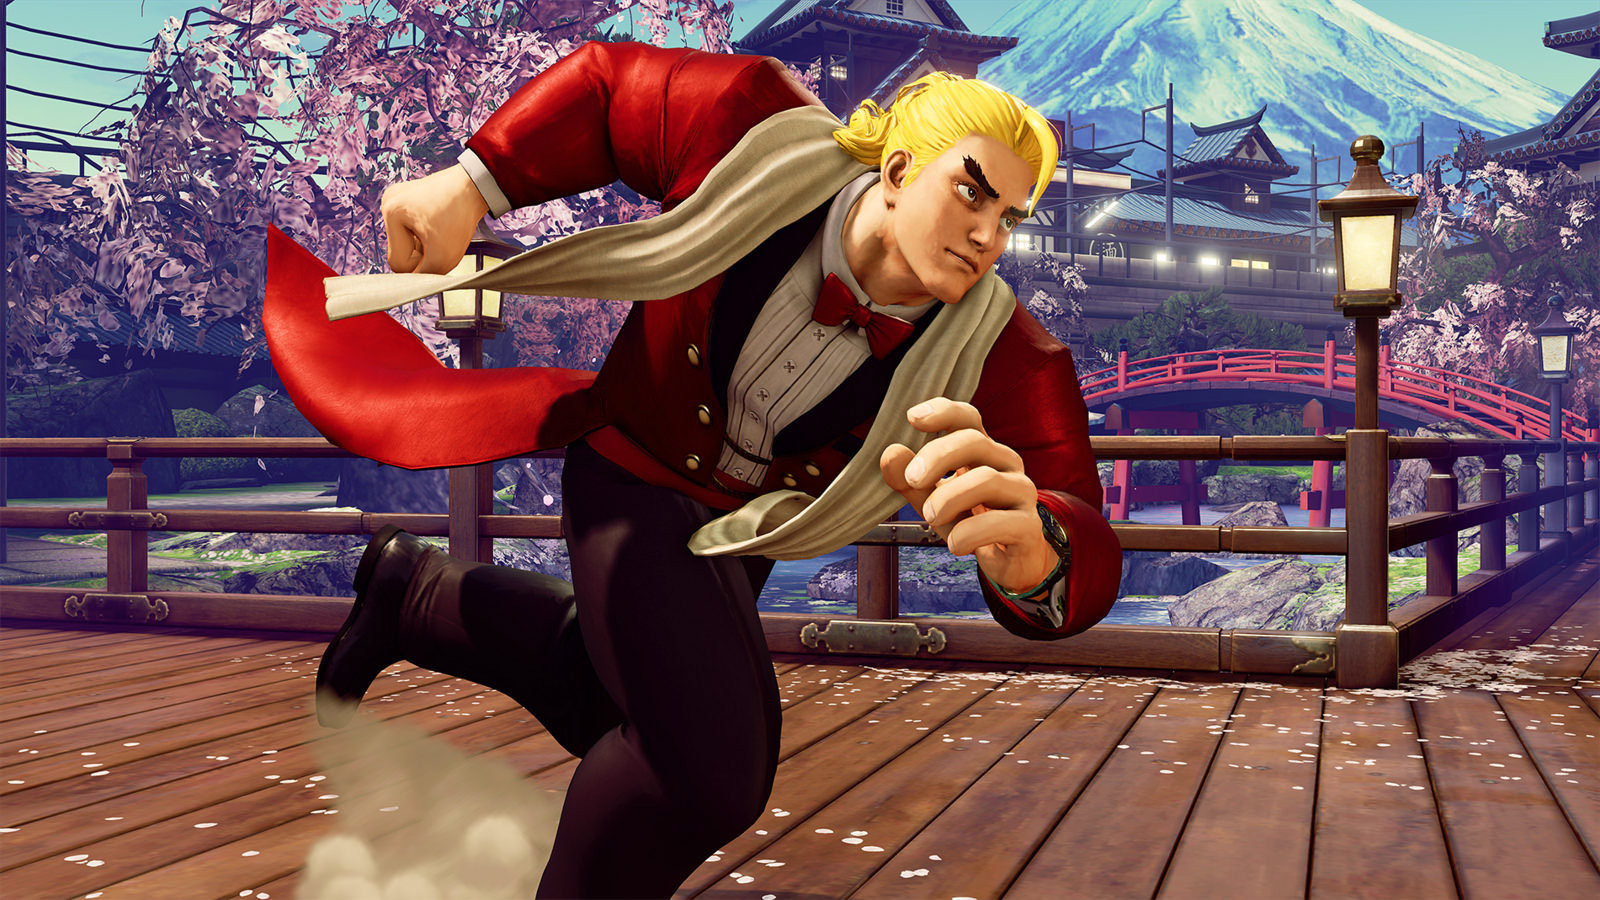 Ring of Pride stage and Guile's Capcom Cup 2016 costume for Street Fighter 5 5 out of 7 image gallery